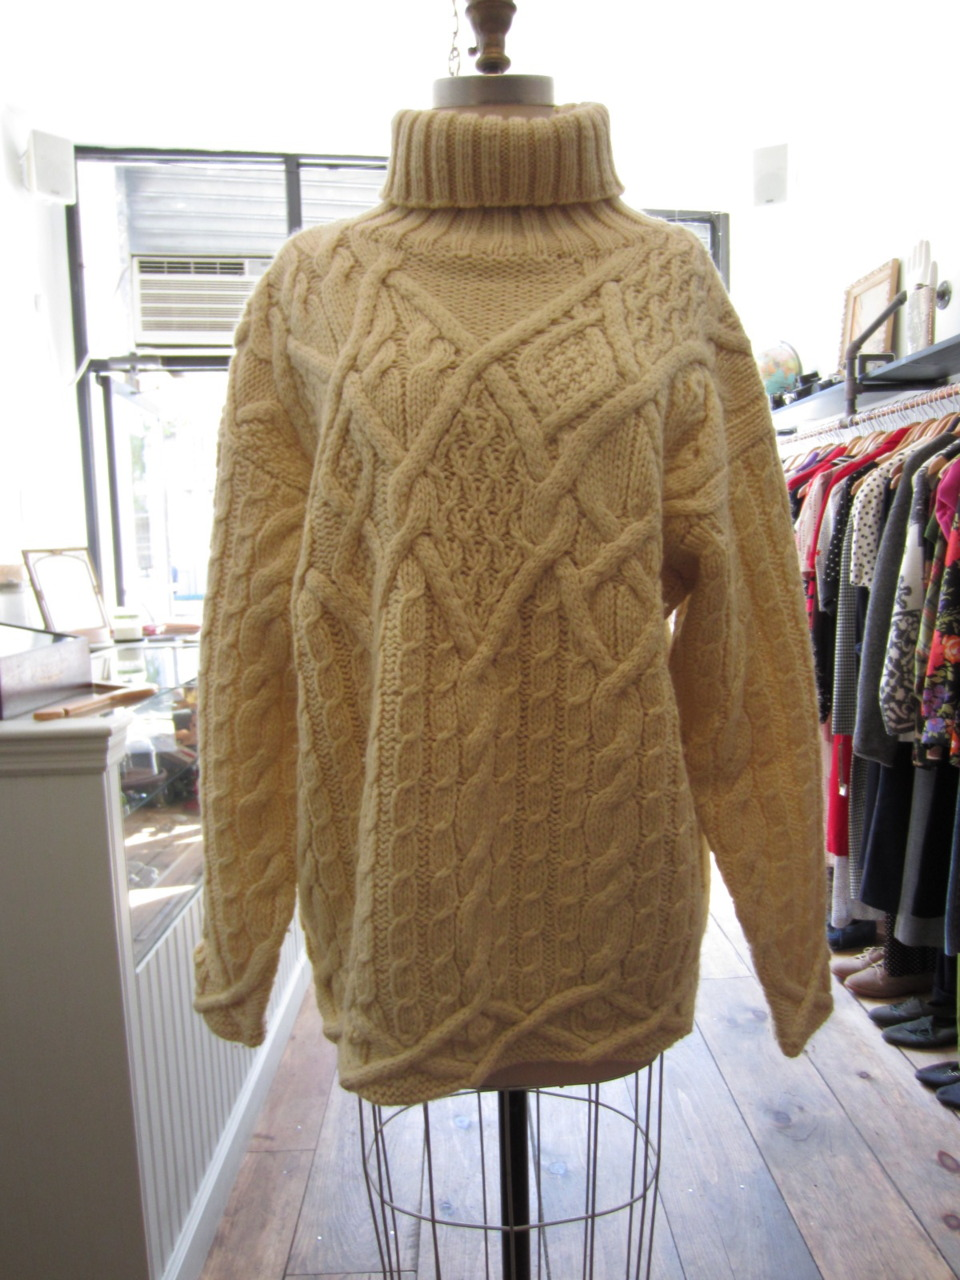 "brooklynvintagecrawl: More from Antoinette: Got to love a chunky ""Brunch Sweater"" - 1990s Gap Exaggerated Cable knit is $68"